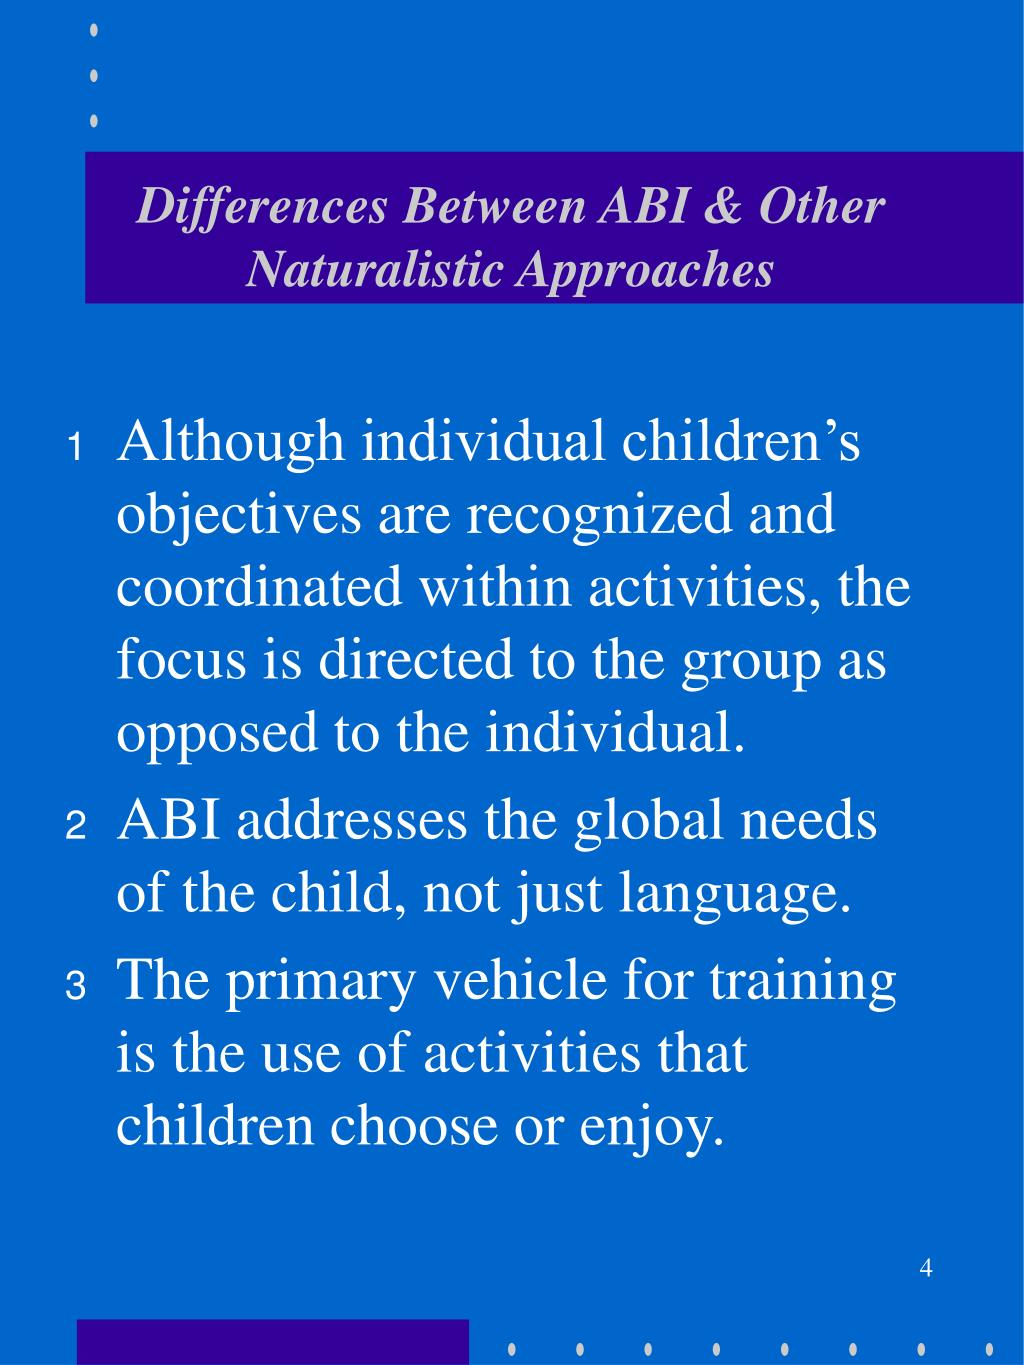 Differences Between ABI & Other Naturalistic Approaches